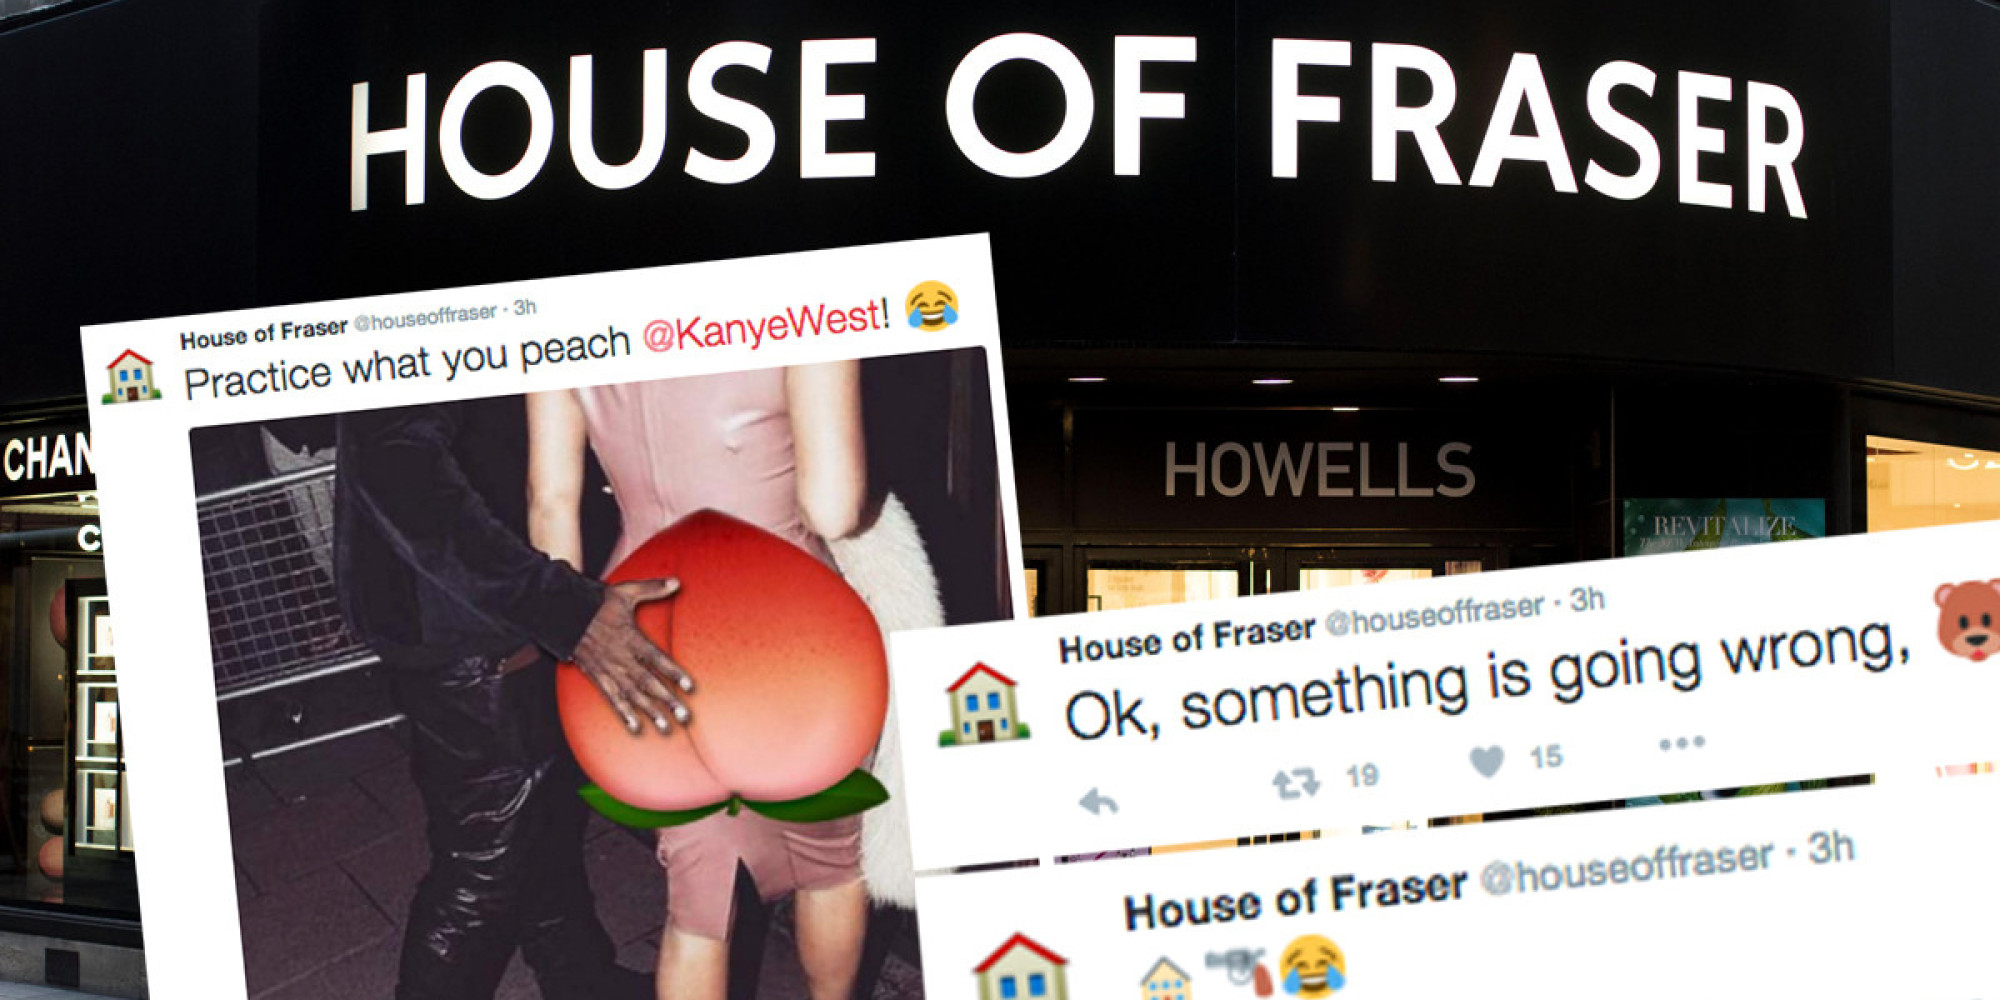 House of fraser twitter account 39 s 39 emojinal 39 campaign for Housse of frazer